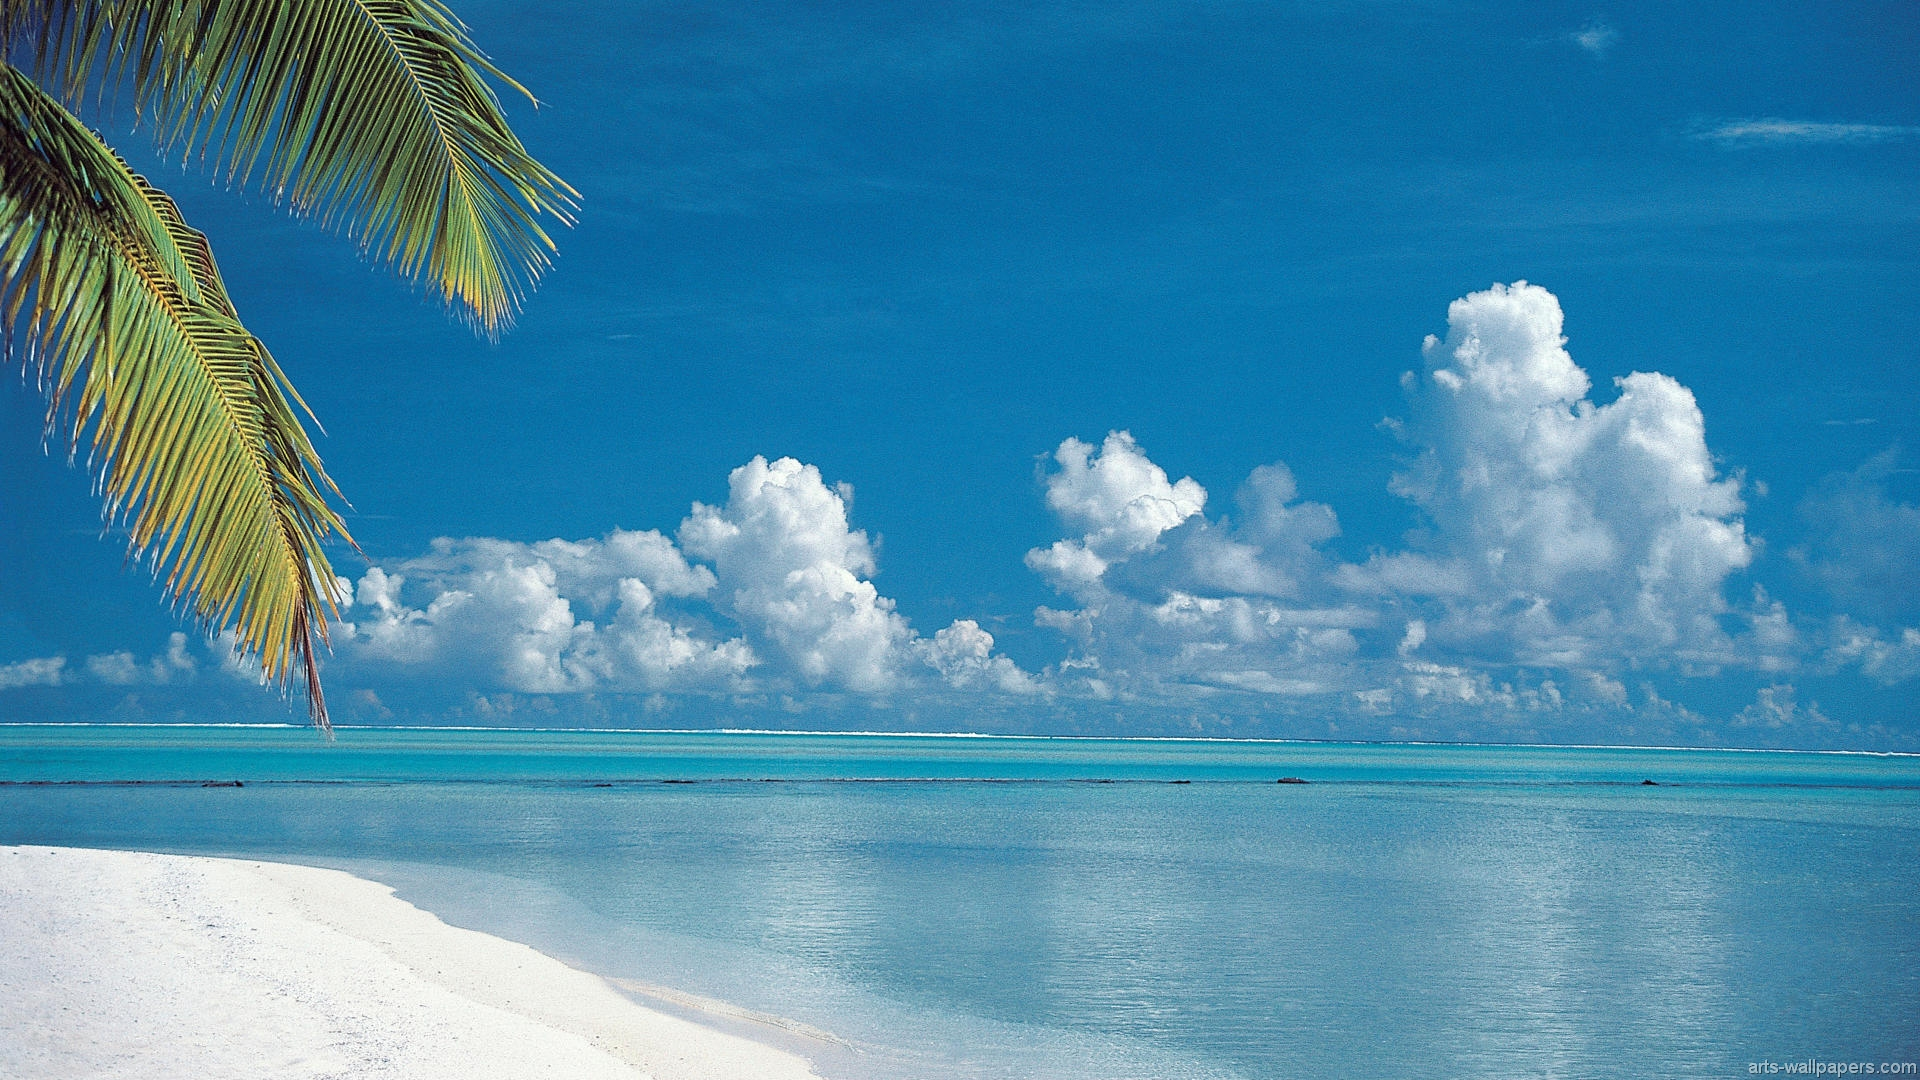 Hd Tropical Paradise Beach Pictures 1920x1080